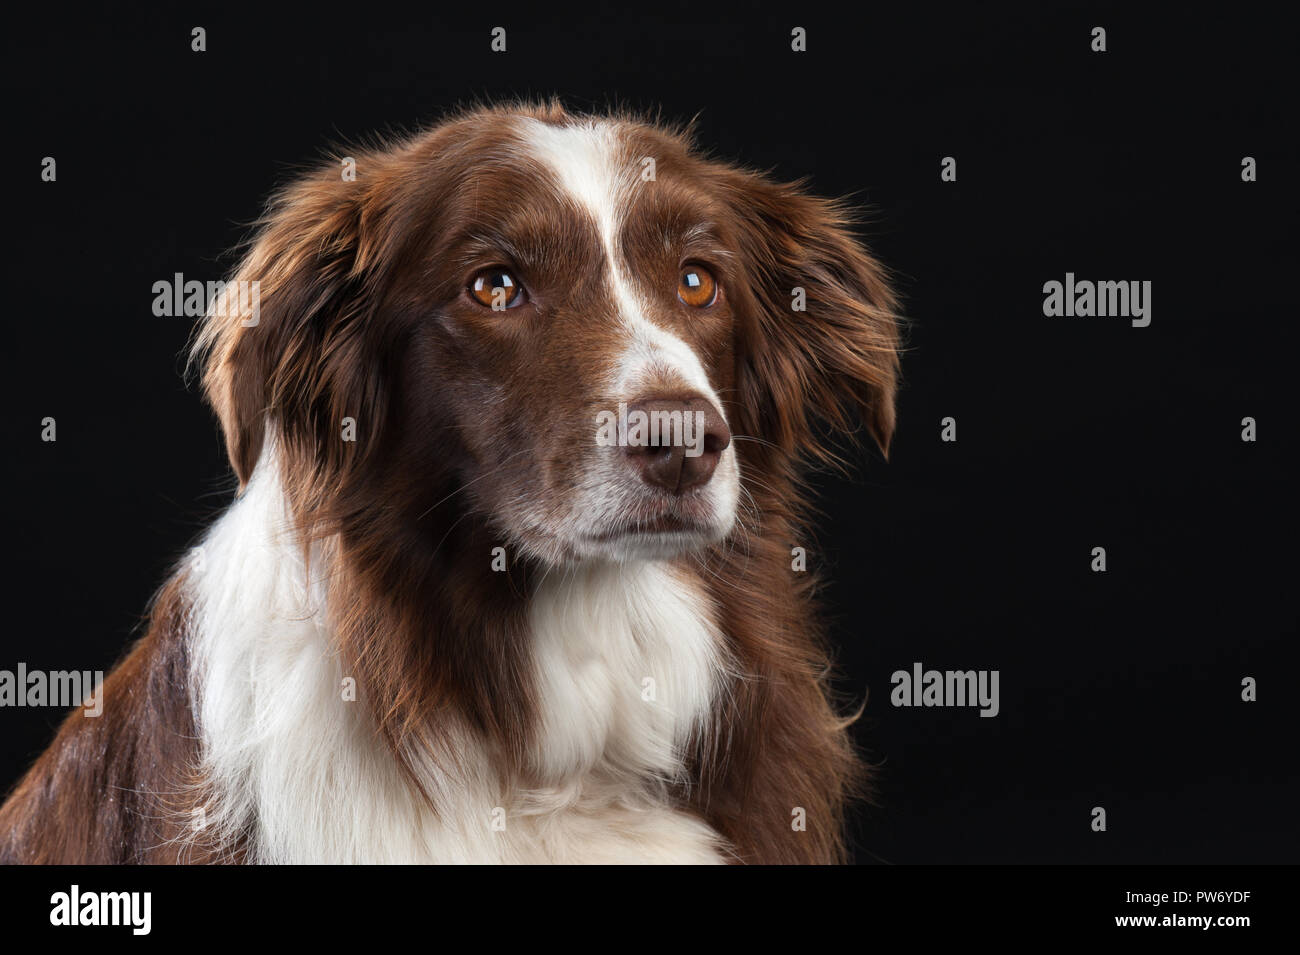 Cross Breed Studio Portrait of Dog with Black Background - Stock Image